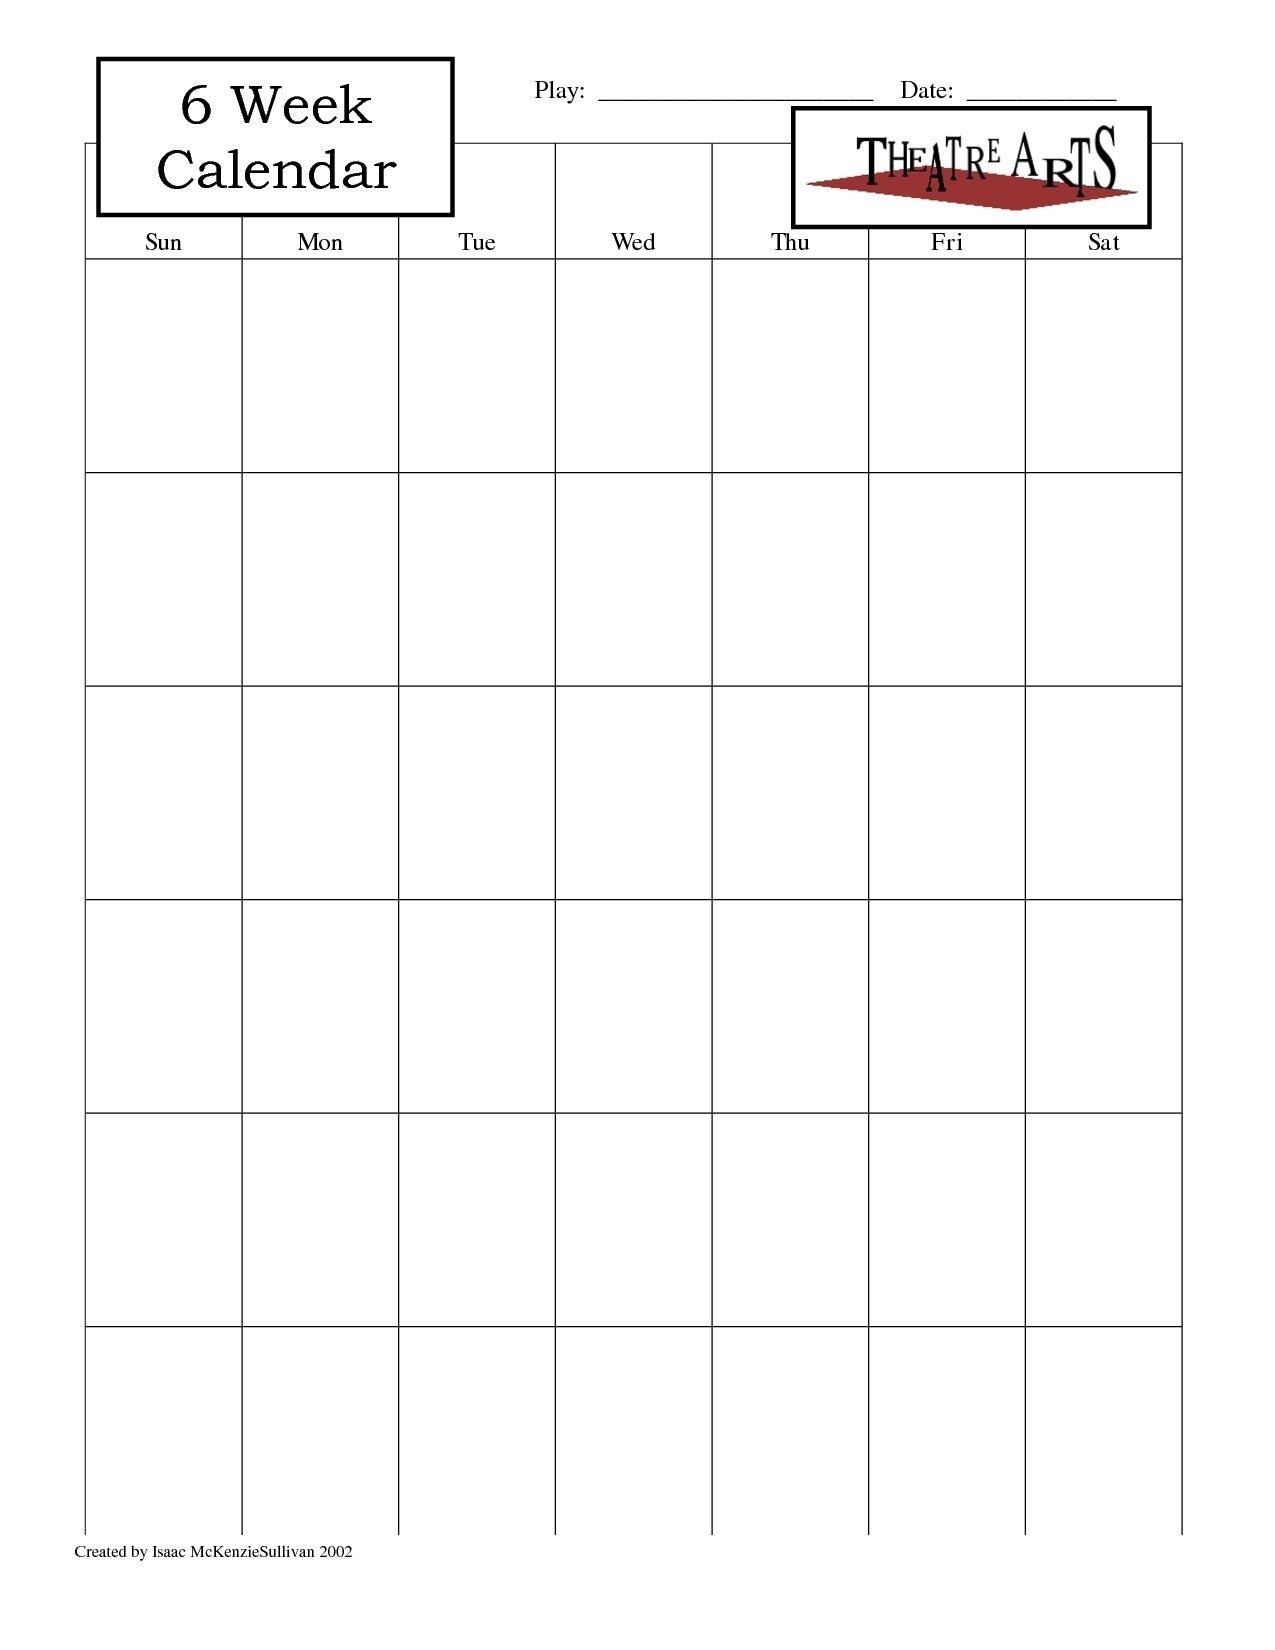 Remarkable Blank 6 Week Calendar Printable In 2020 | Blank